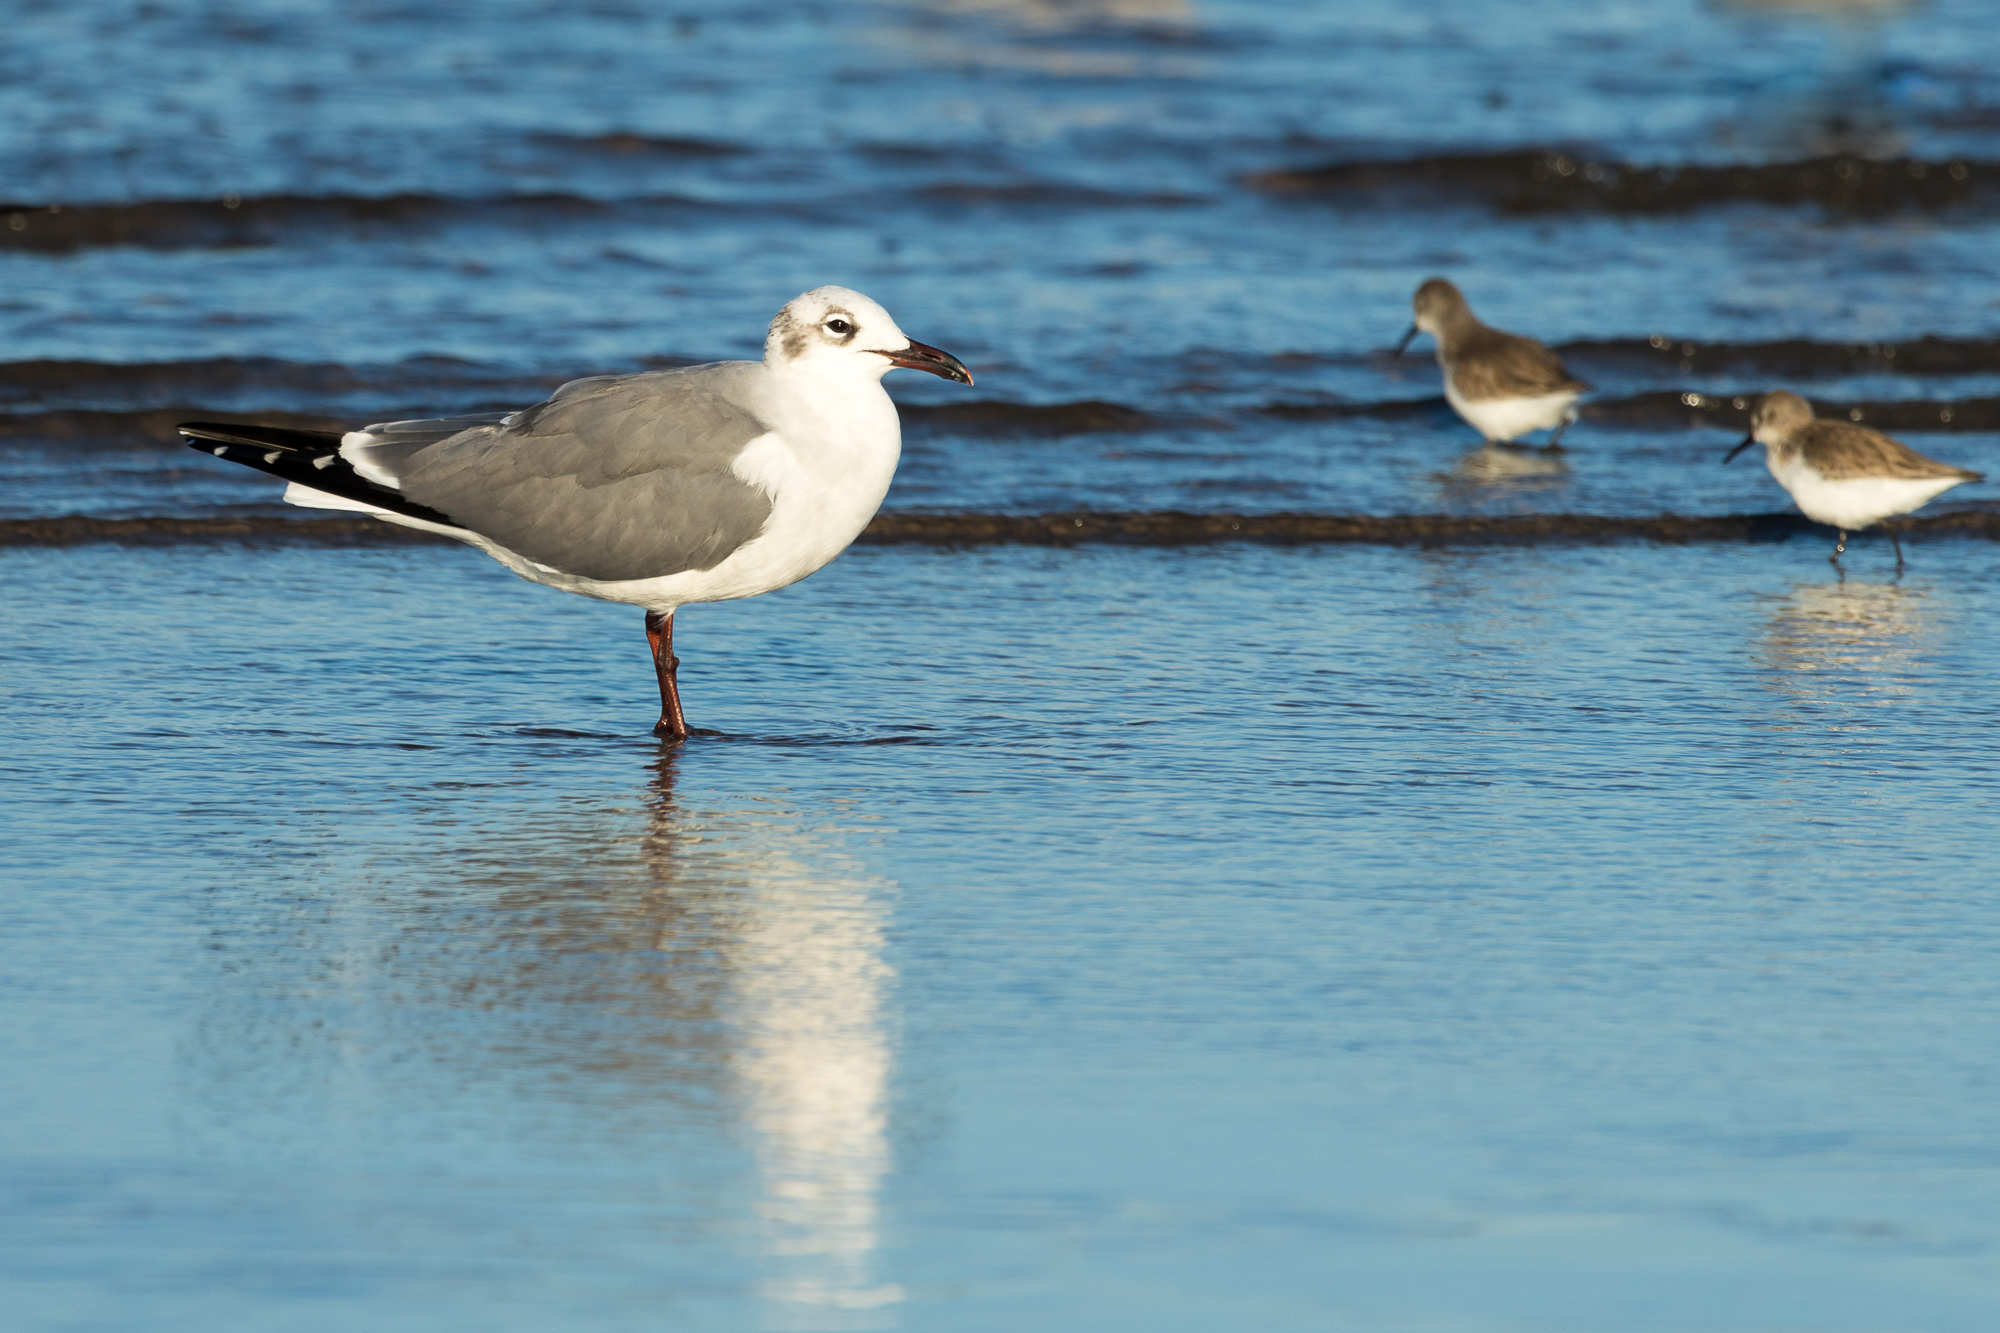 A laughing gull stands just off shore in the shallow water, Puerto Vallarta, Mexico